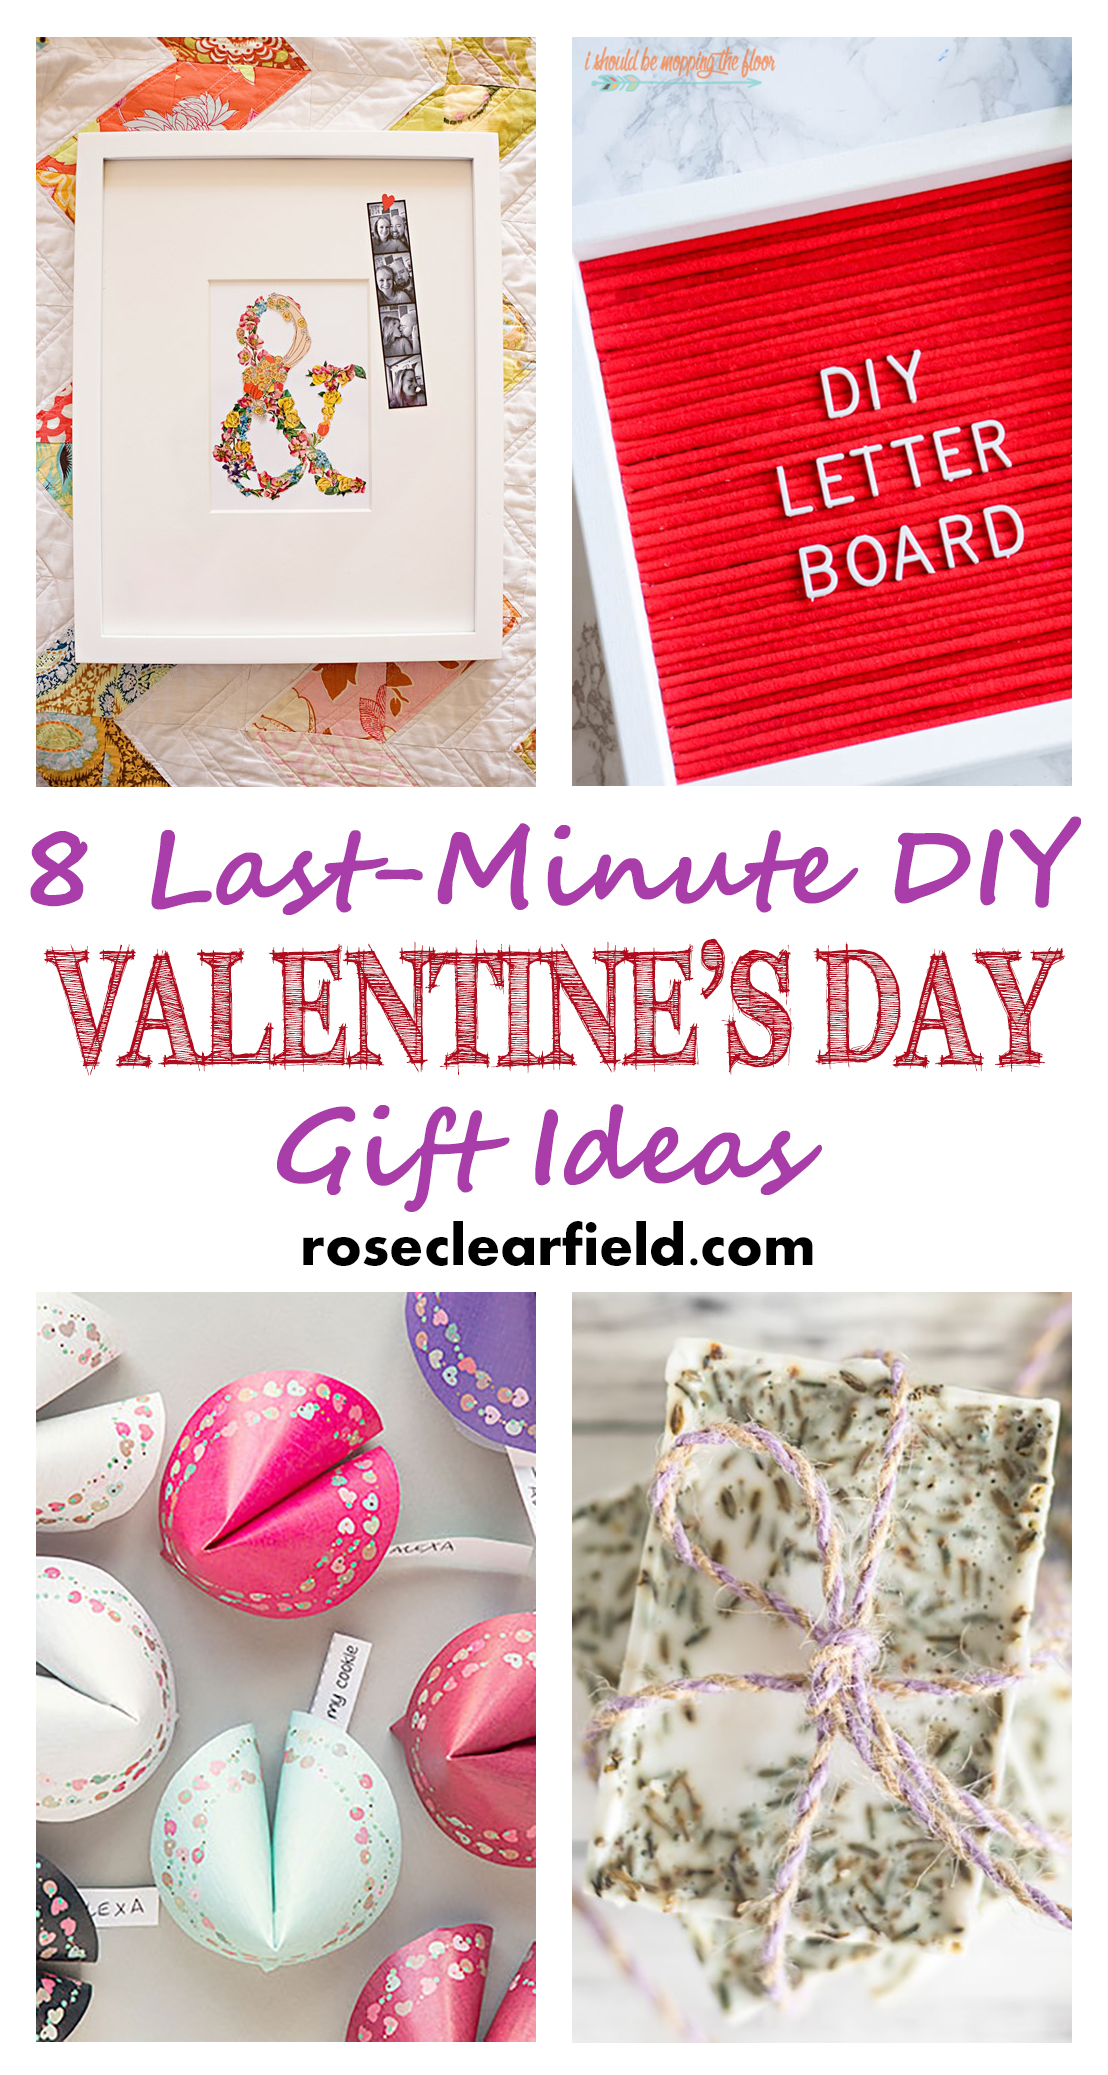 Last Minute Diy Valentine S Day Gift Ideas Rose Clearfield